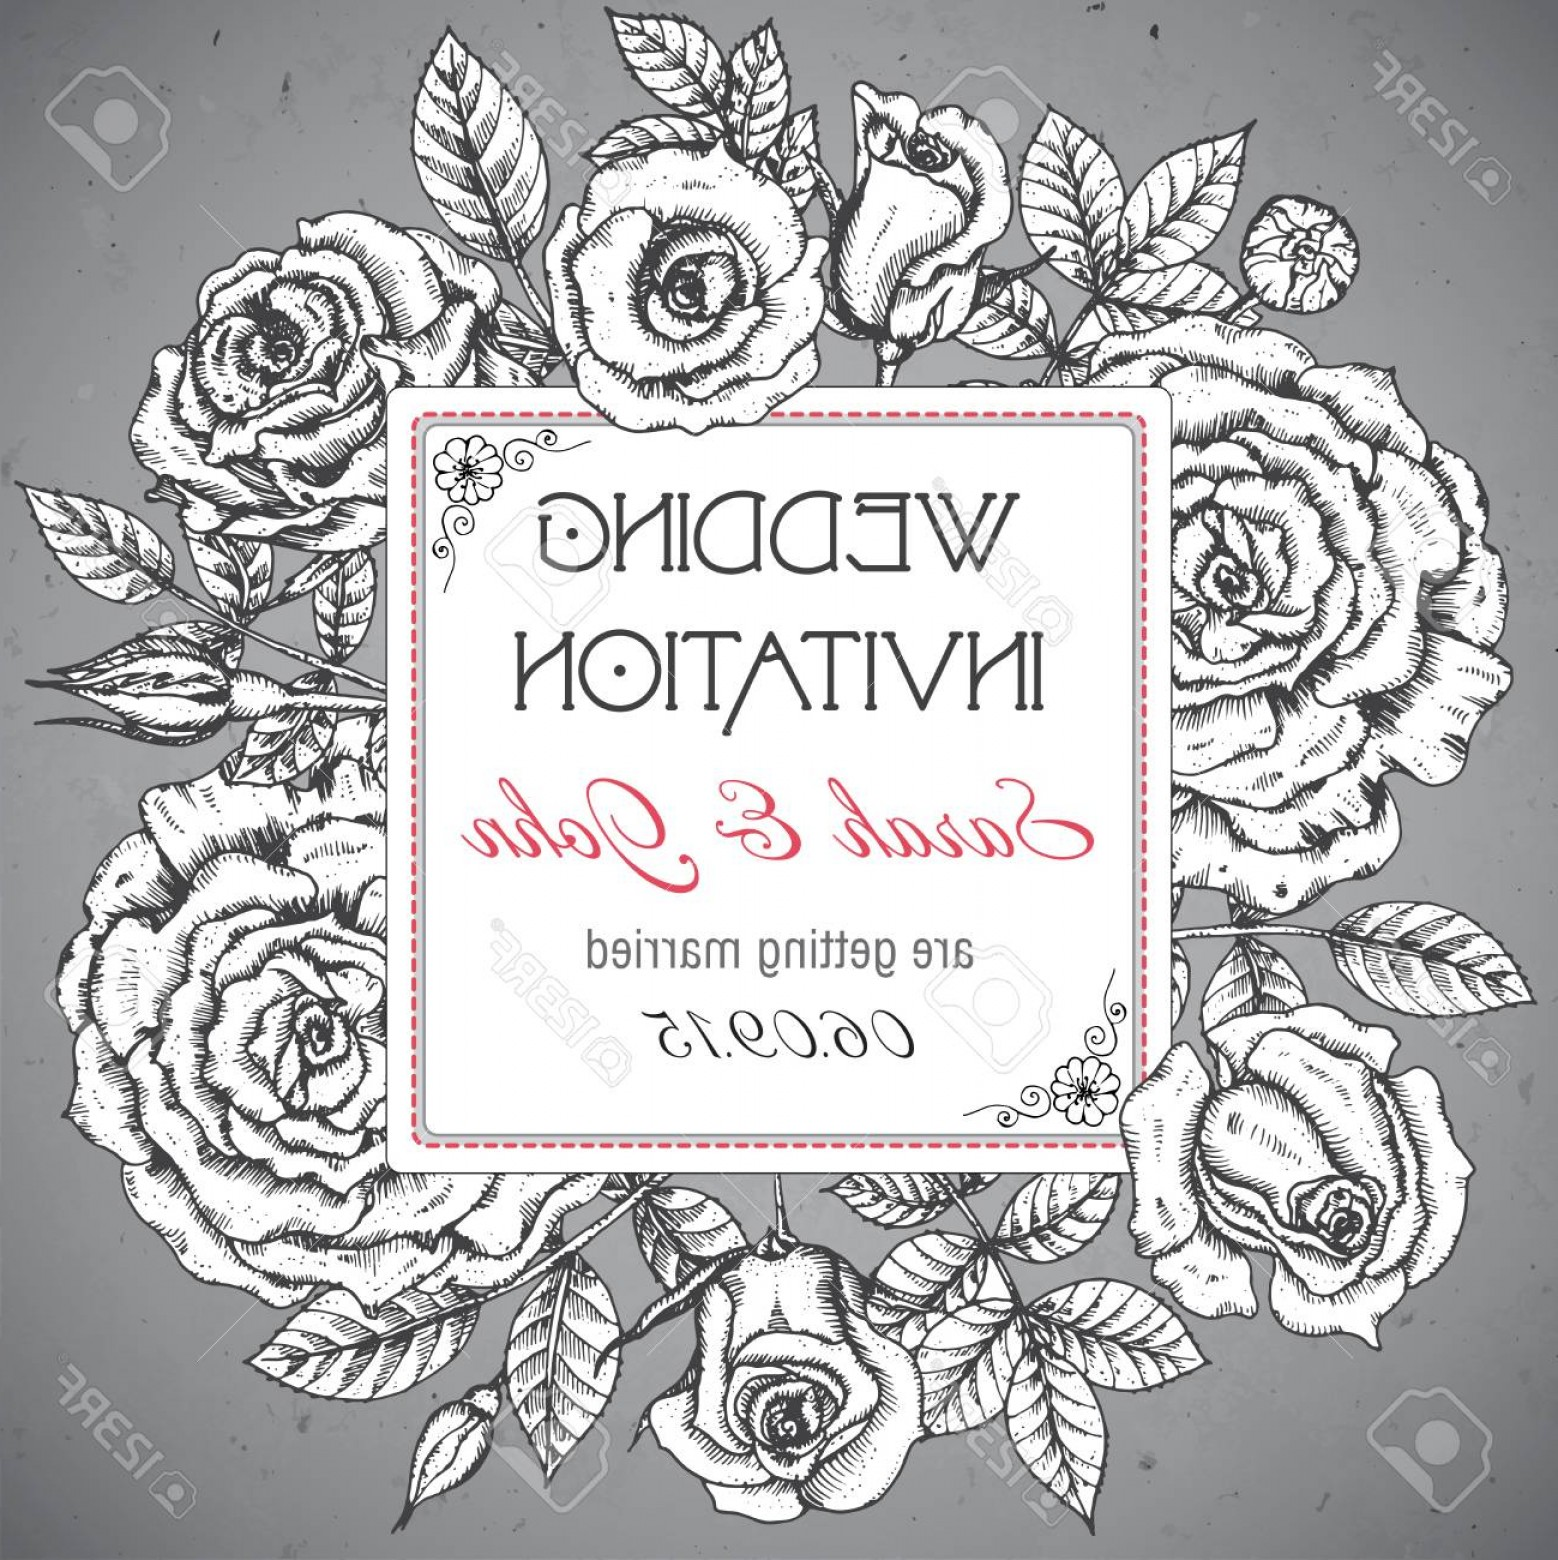 Elegant Wedding Vector Graphics: Photostock Vector Vintage Elegant Wedding Invitation Or Card Save The Date With Graphic Roses And Leaves Vector Illust